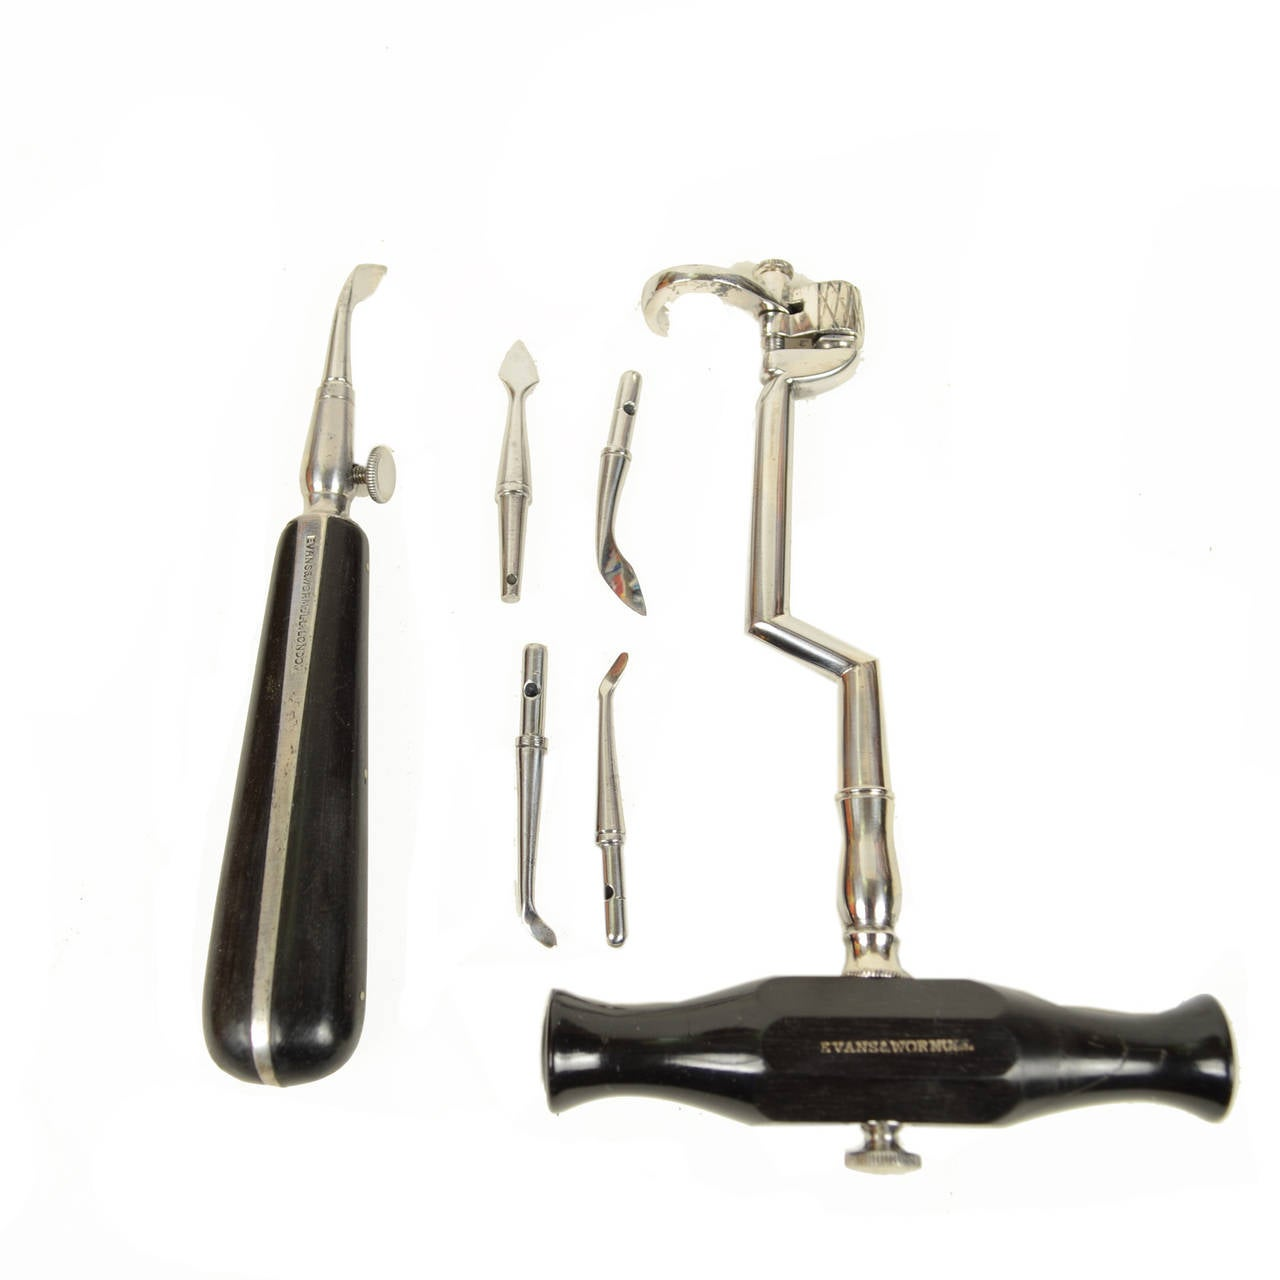 Dentist Set Signed Evans & Wormull 31 Stamford London In Excellent Condition For Sale In Milan, IT